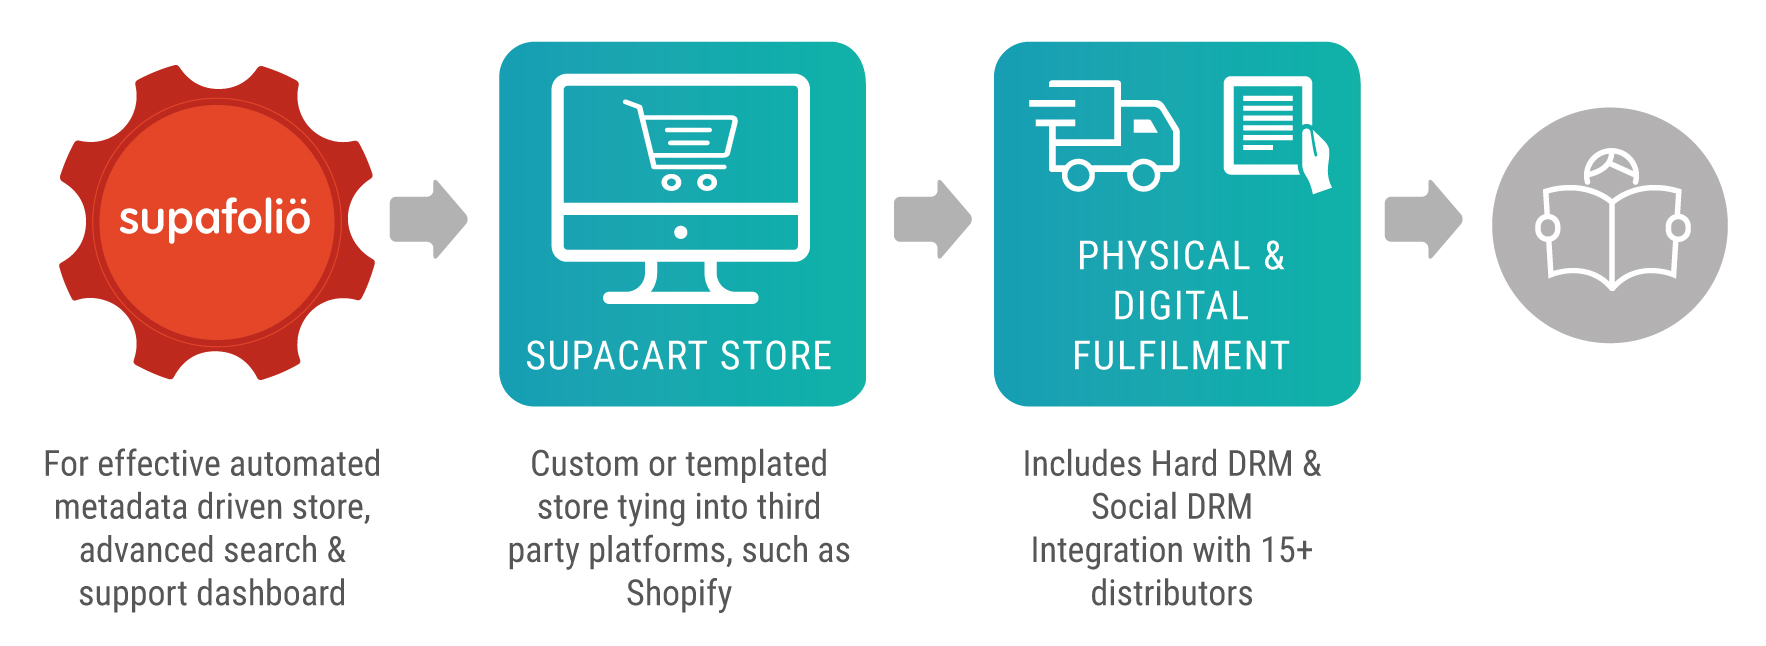 SupaCart offers tailored solutions for publishers of all sizes. Our solutions are driven by our Supafolio API